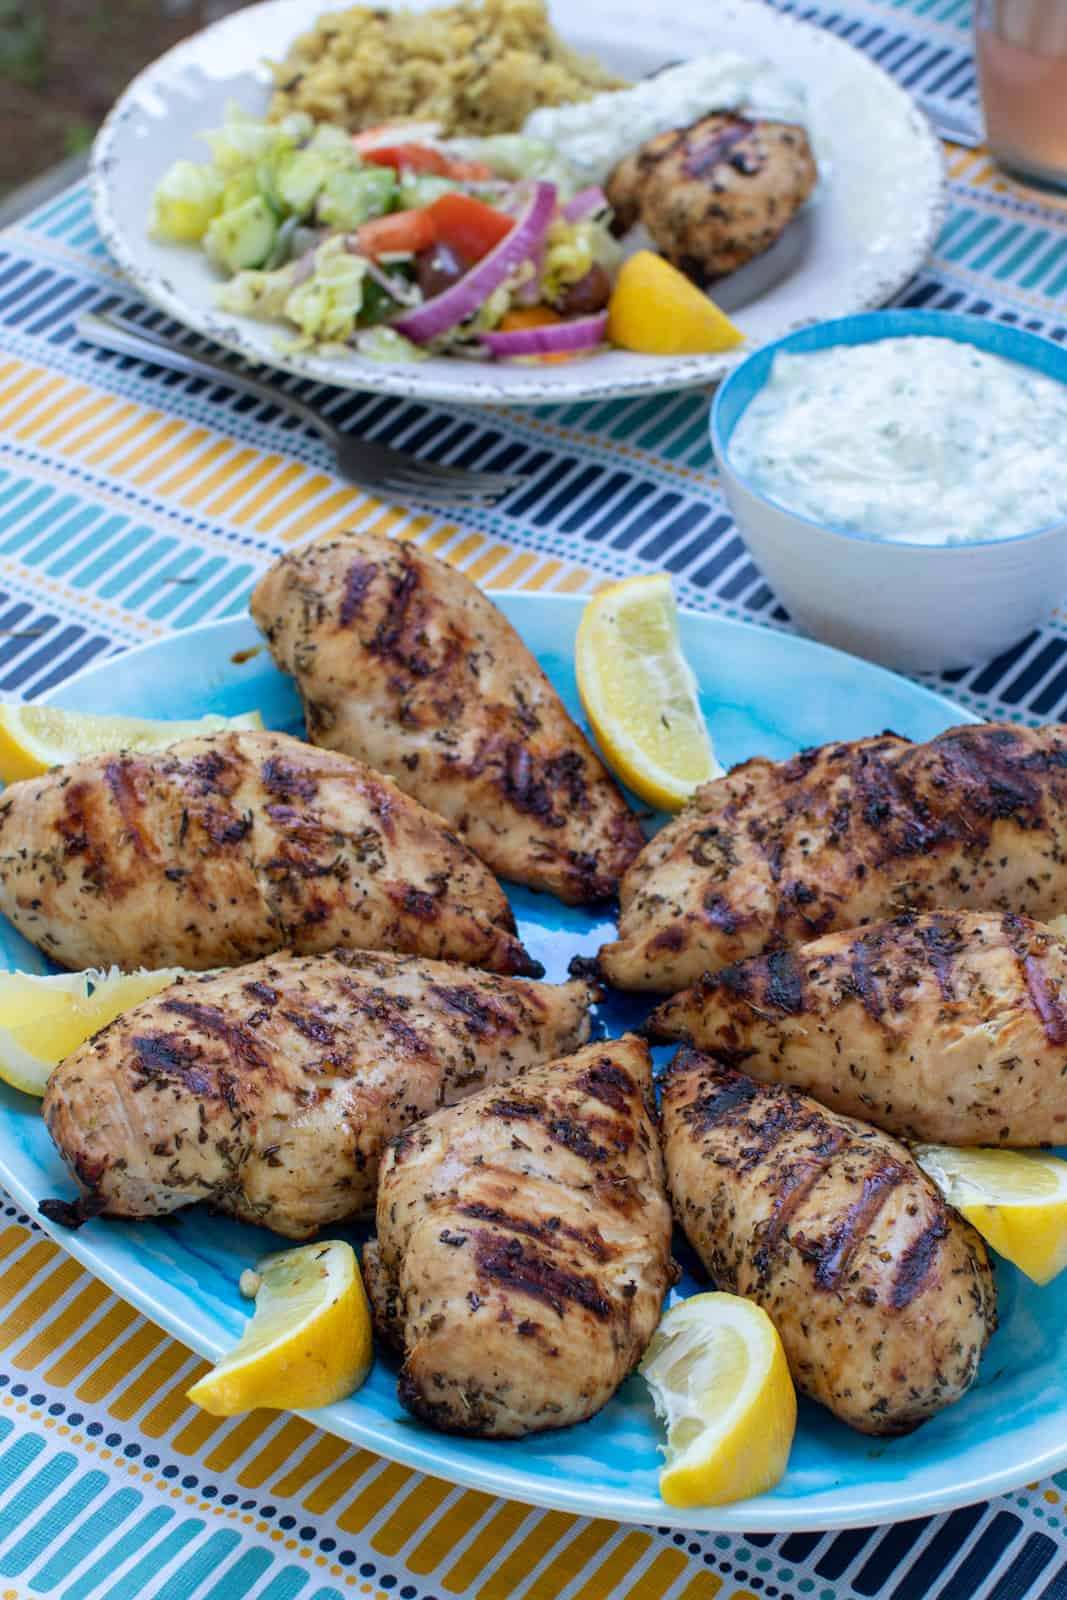 A platter of Grilled Greek Chicken with lemon slices.